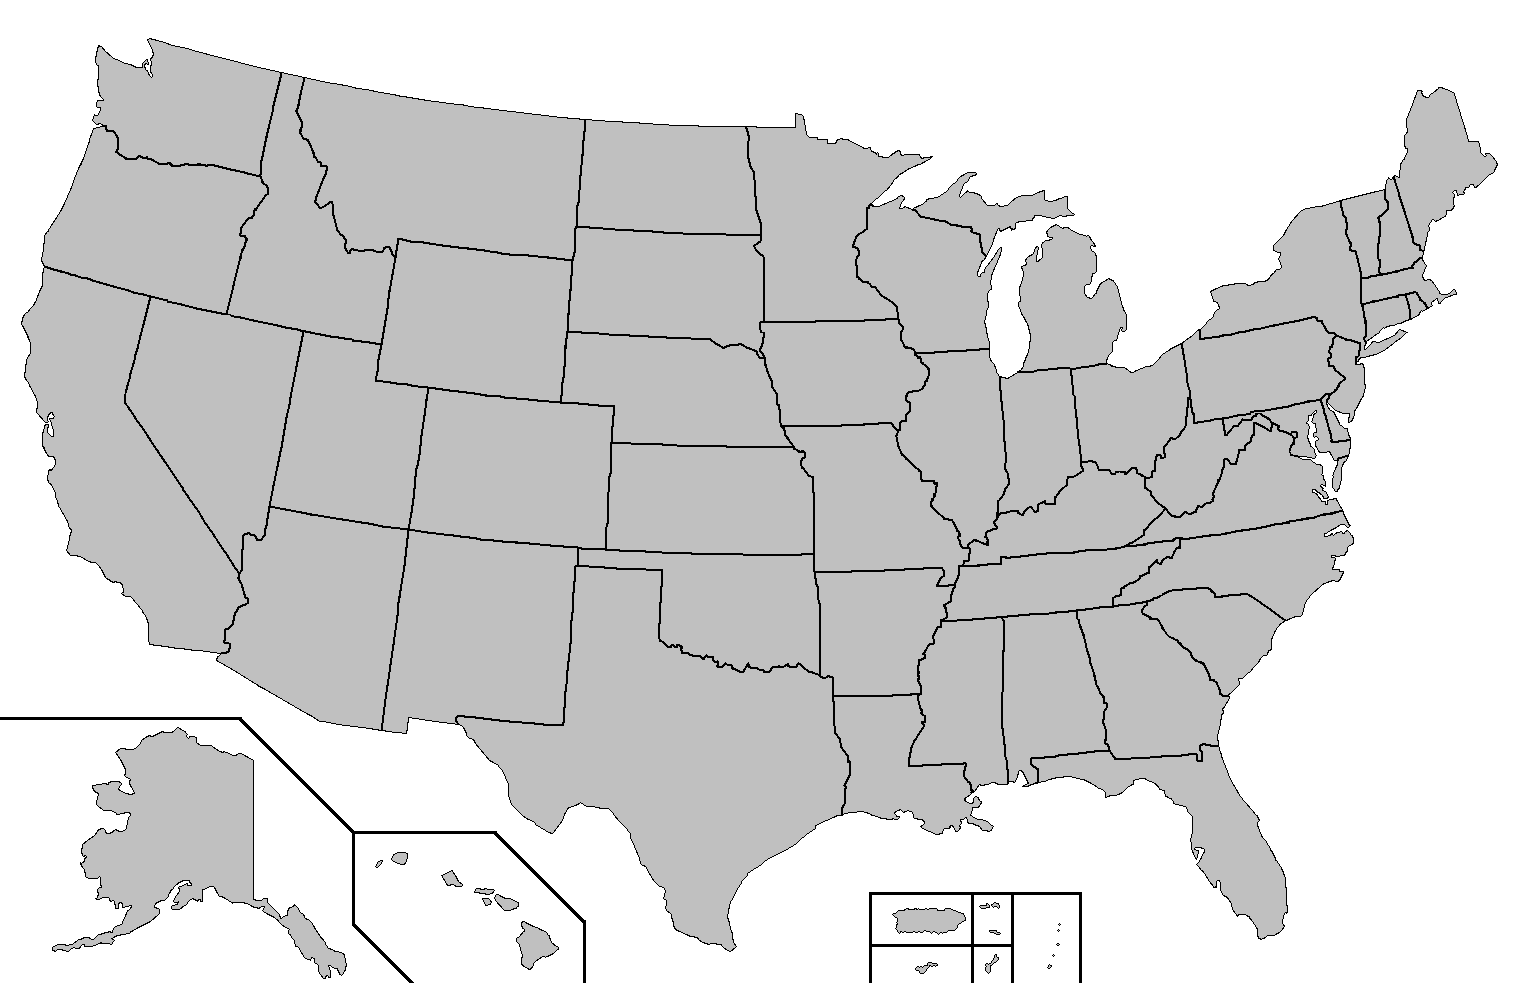 Blank Us Map With Territories File:Blank map of the United States.PNG   Wikimedia Commons